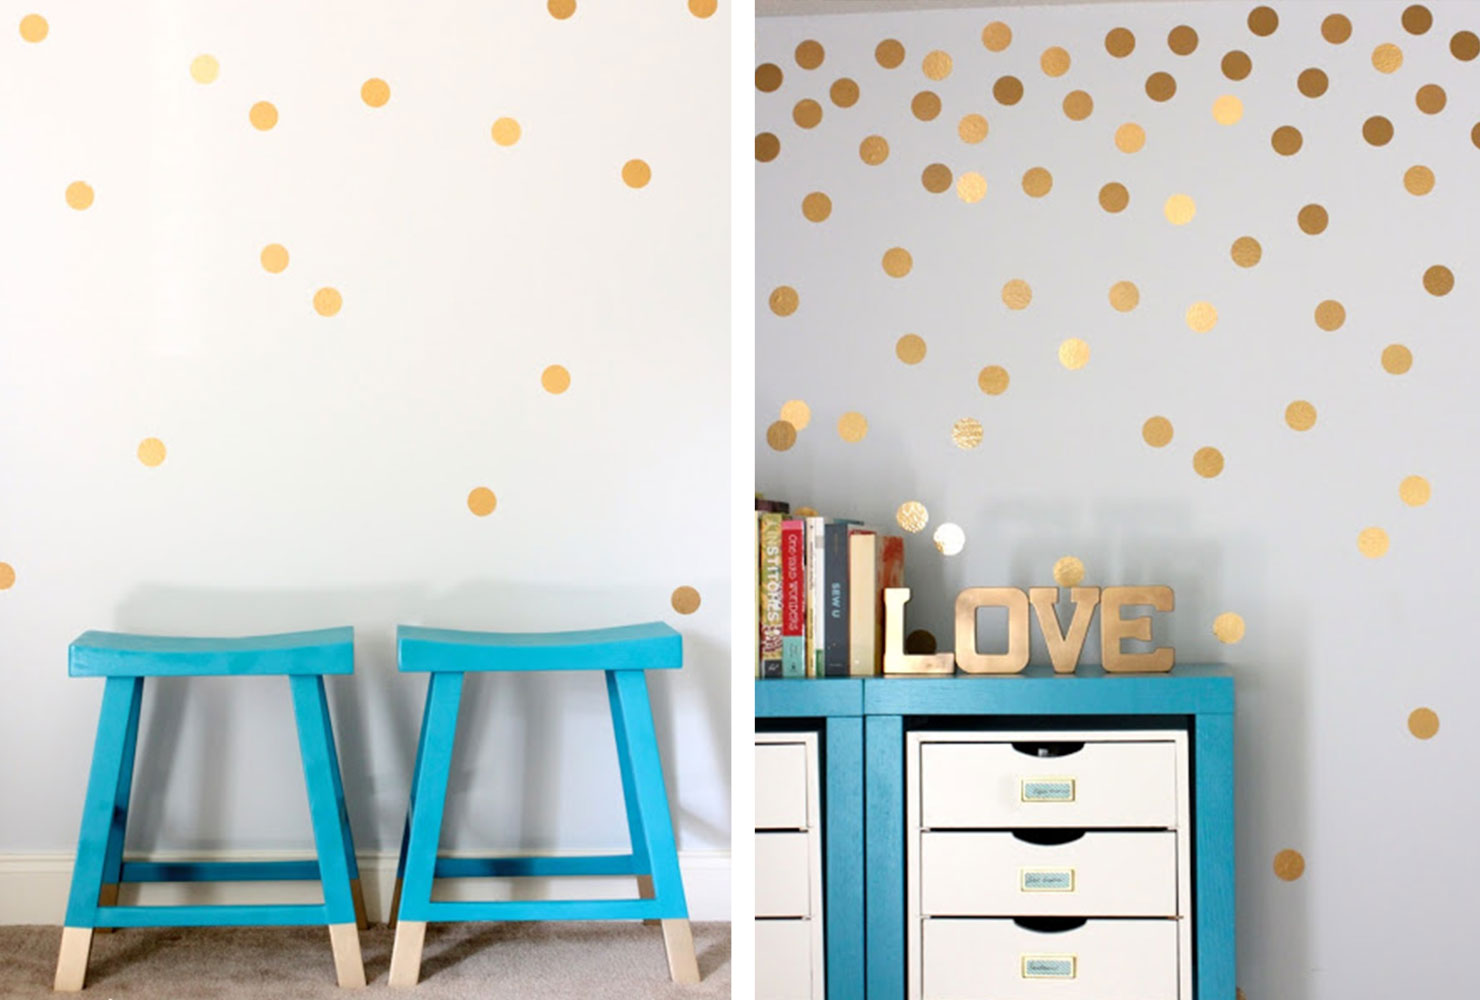 Image Room Decoration 55 Diy Room Decor Ideas To Decorate Your Home Shutterfly